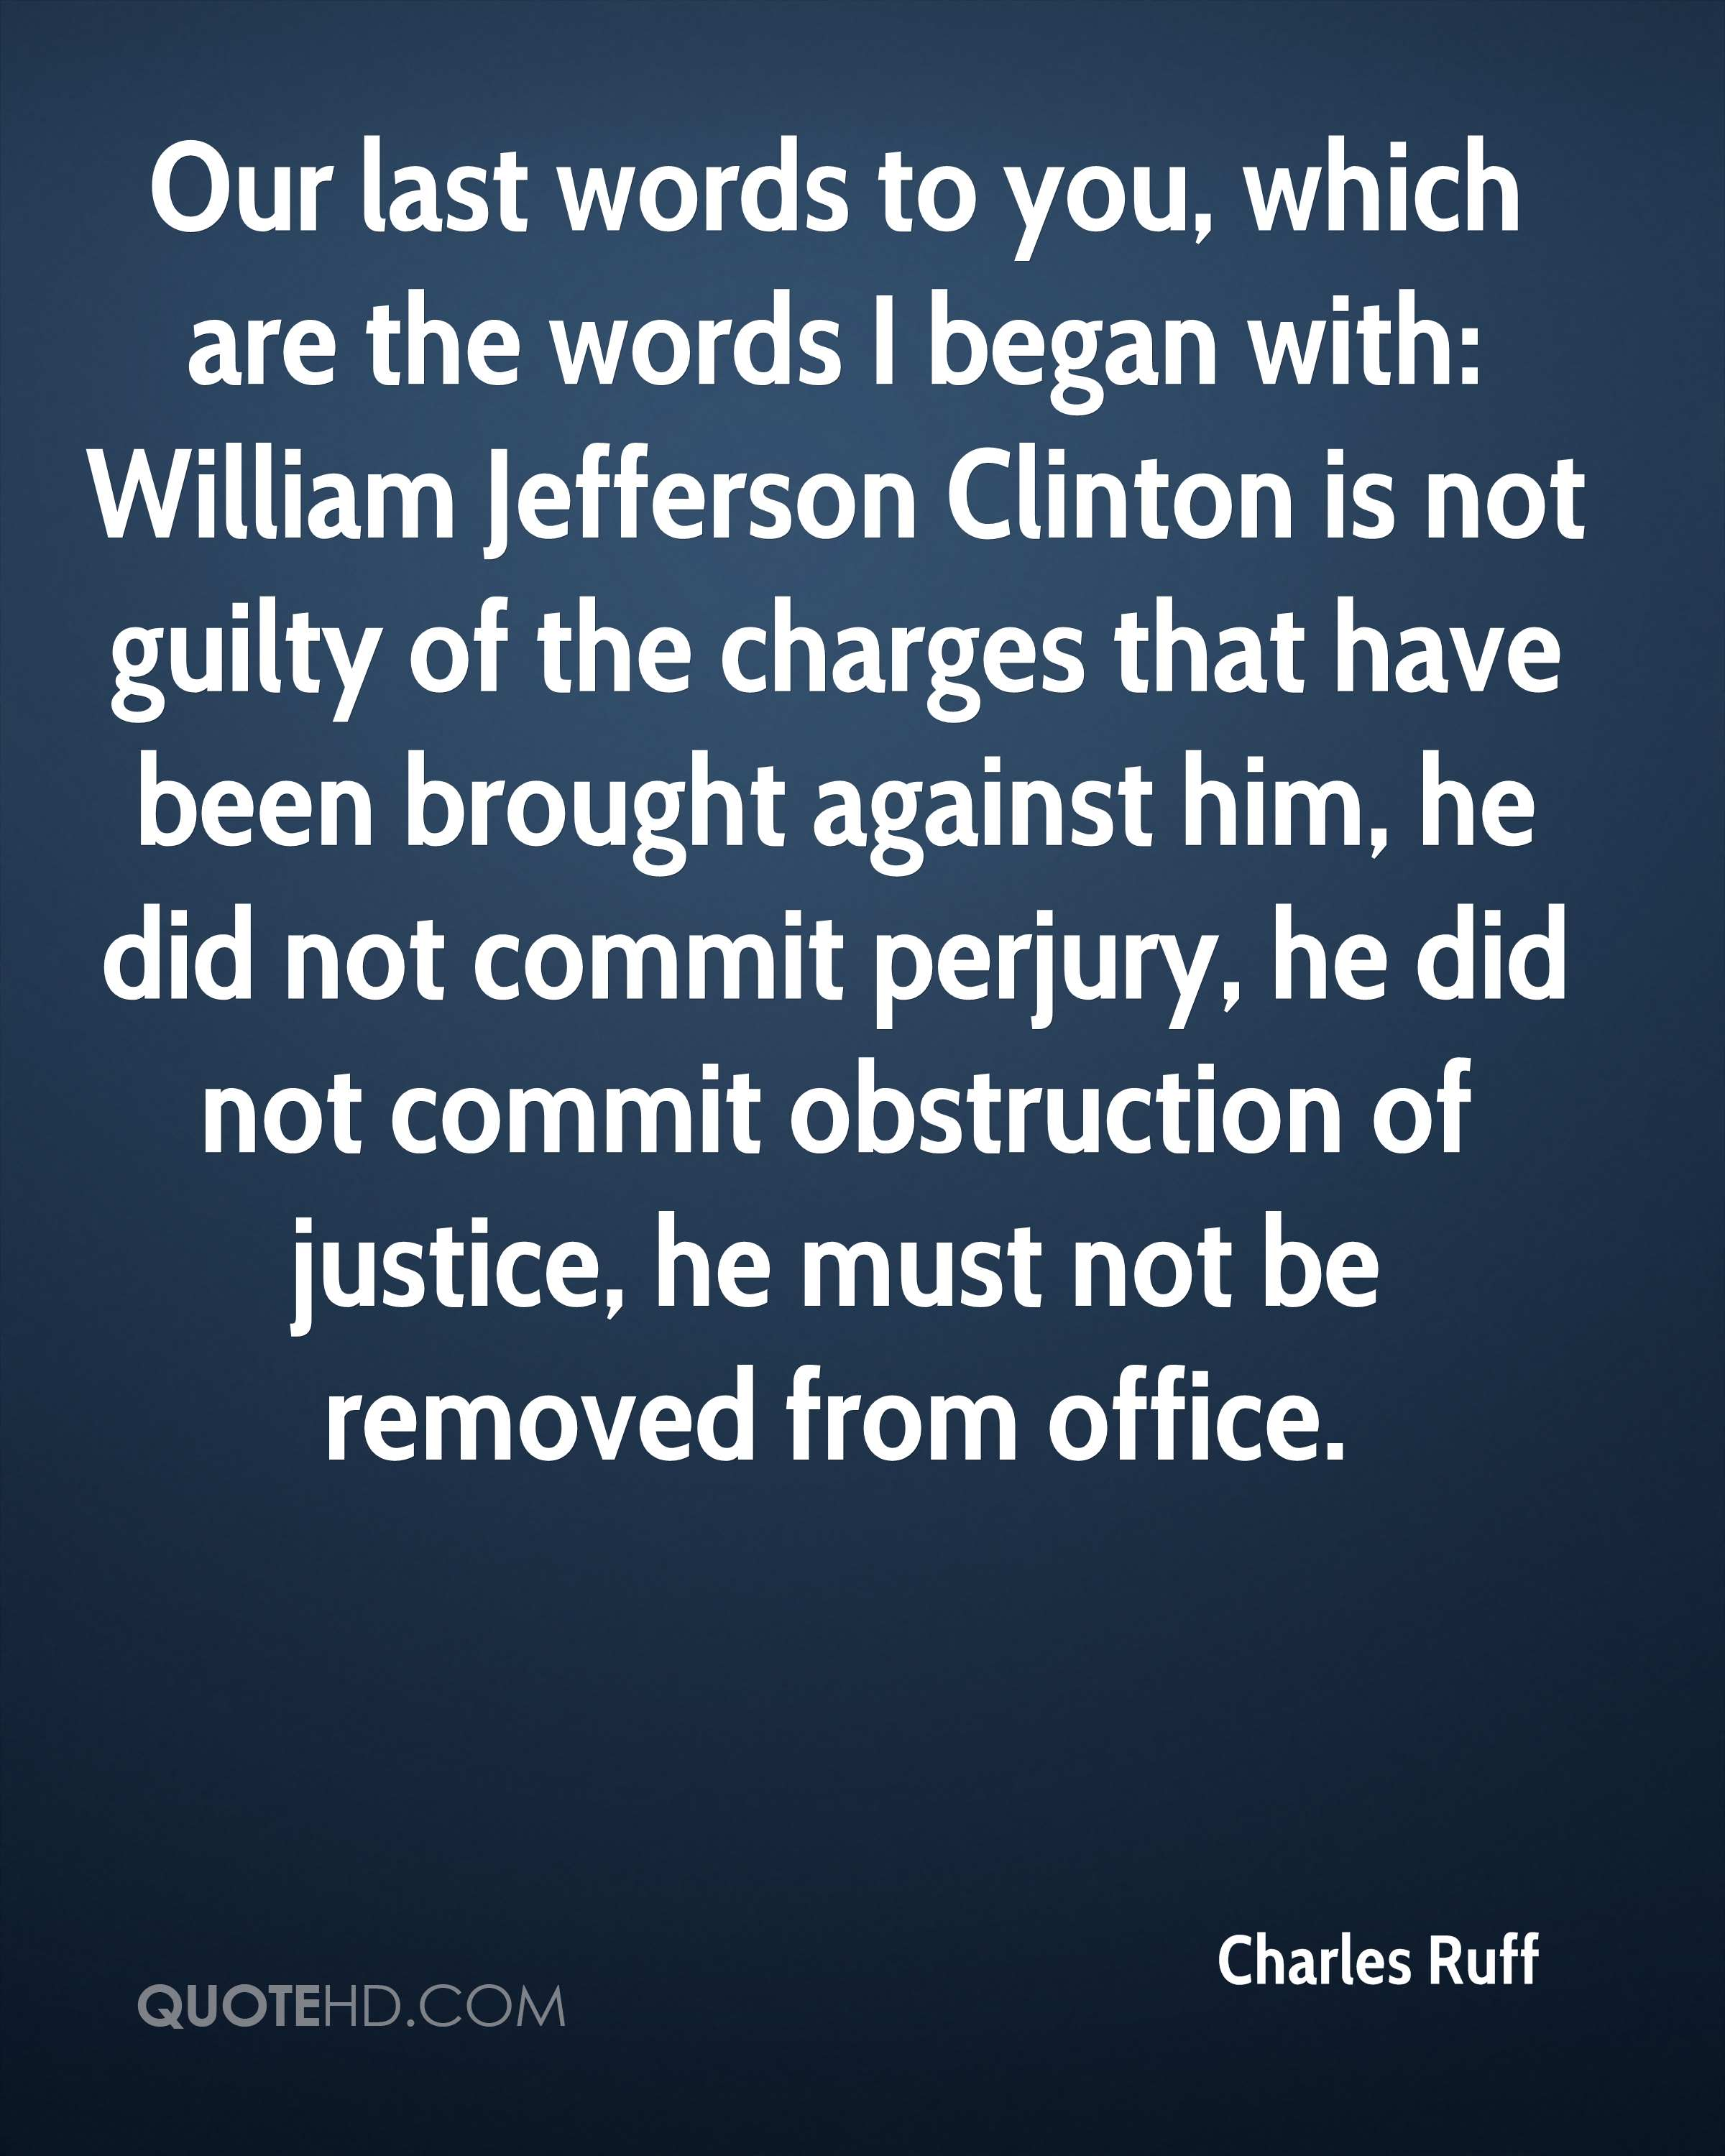 Our last words to you, which are the words I began with: William Jefferson Clinton is not guilty of the charges that have been brought against him, he did not commit perjury, he did not commit obstruction of justice, he must not be removed from office.